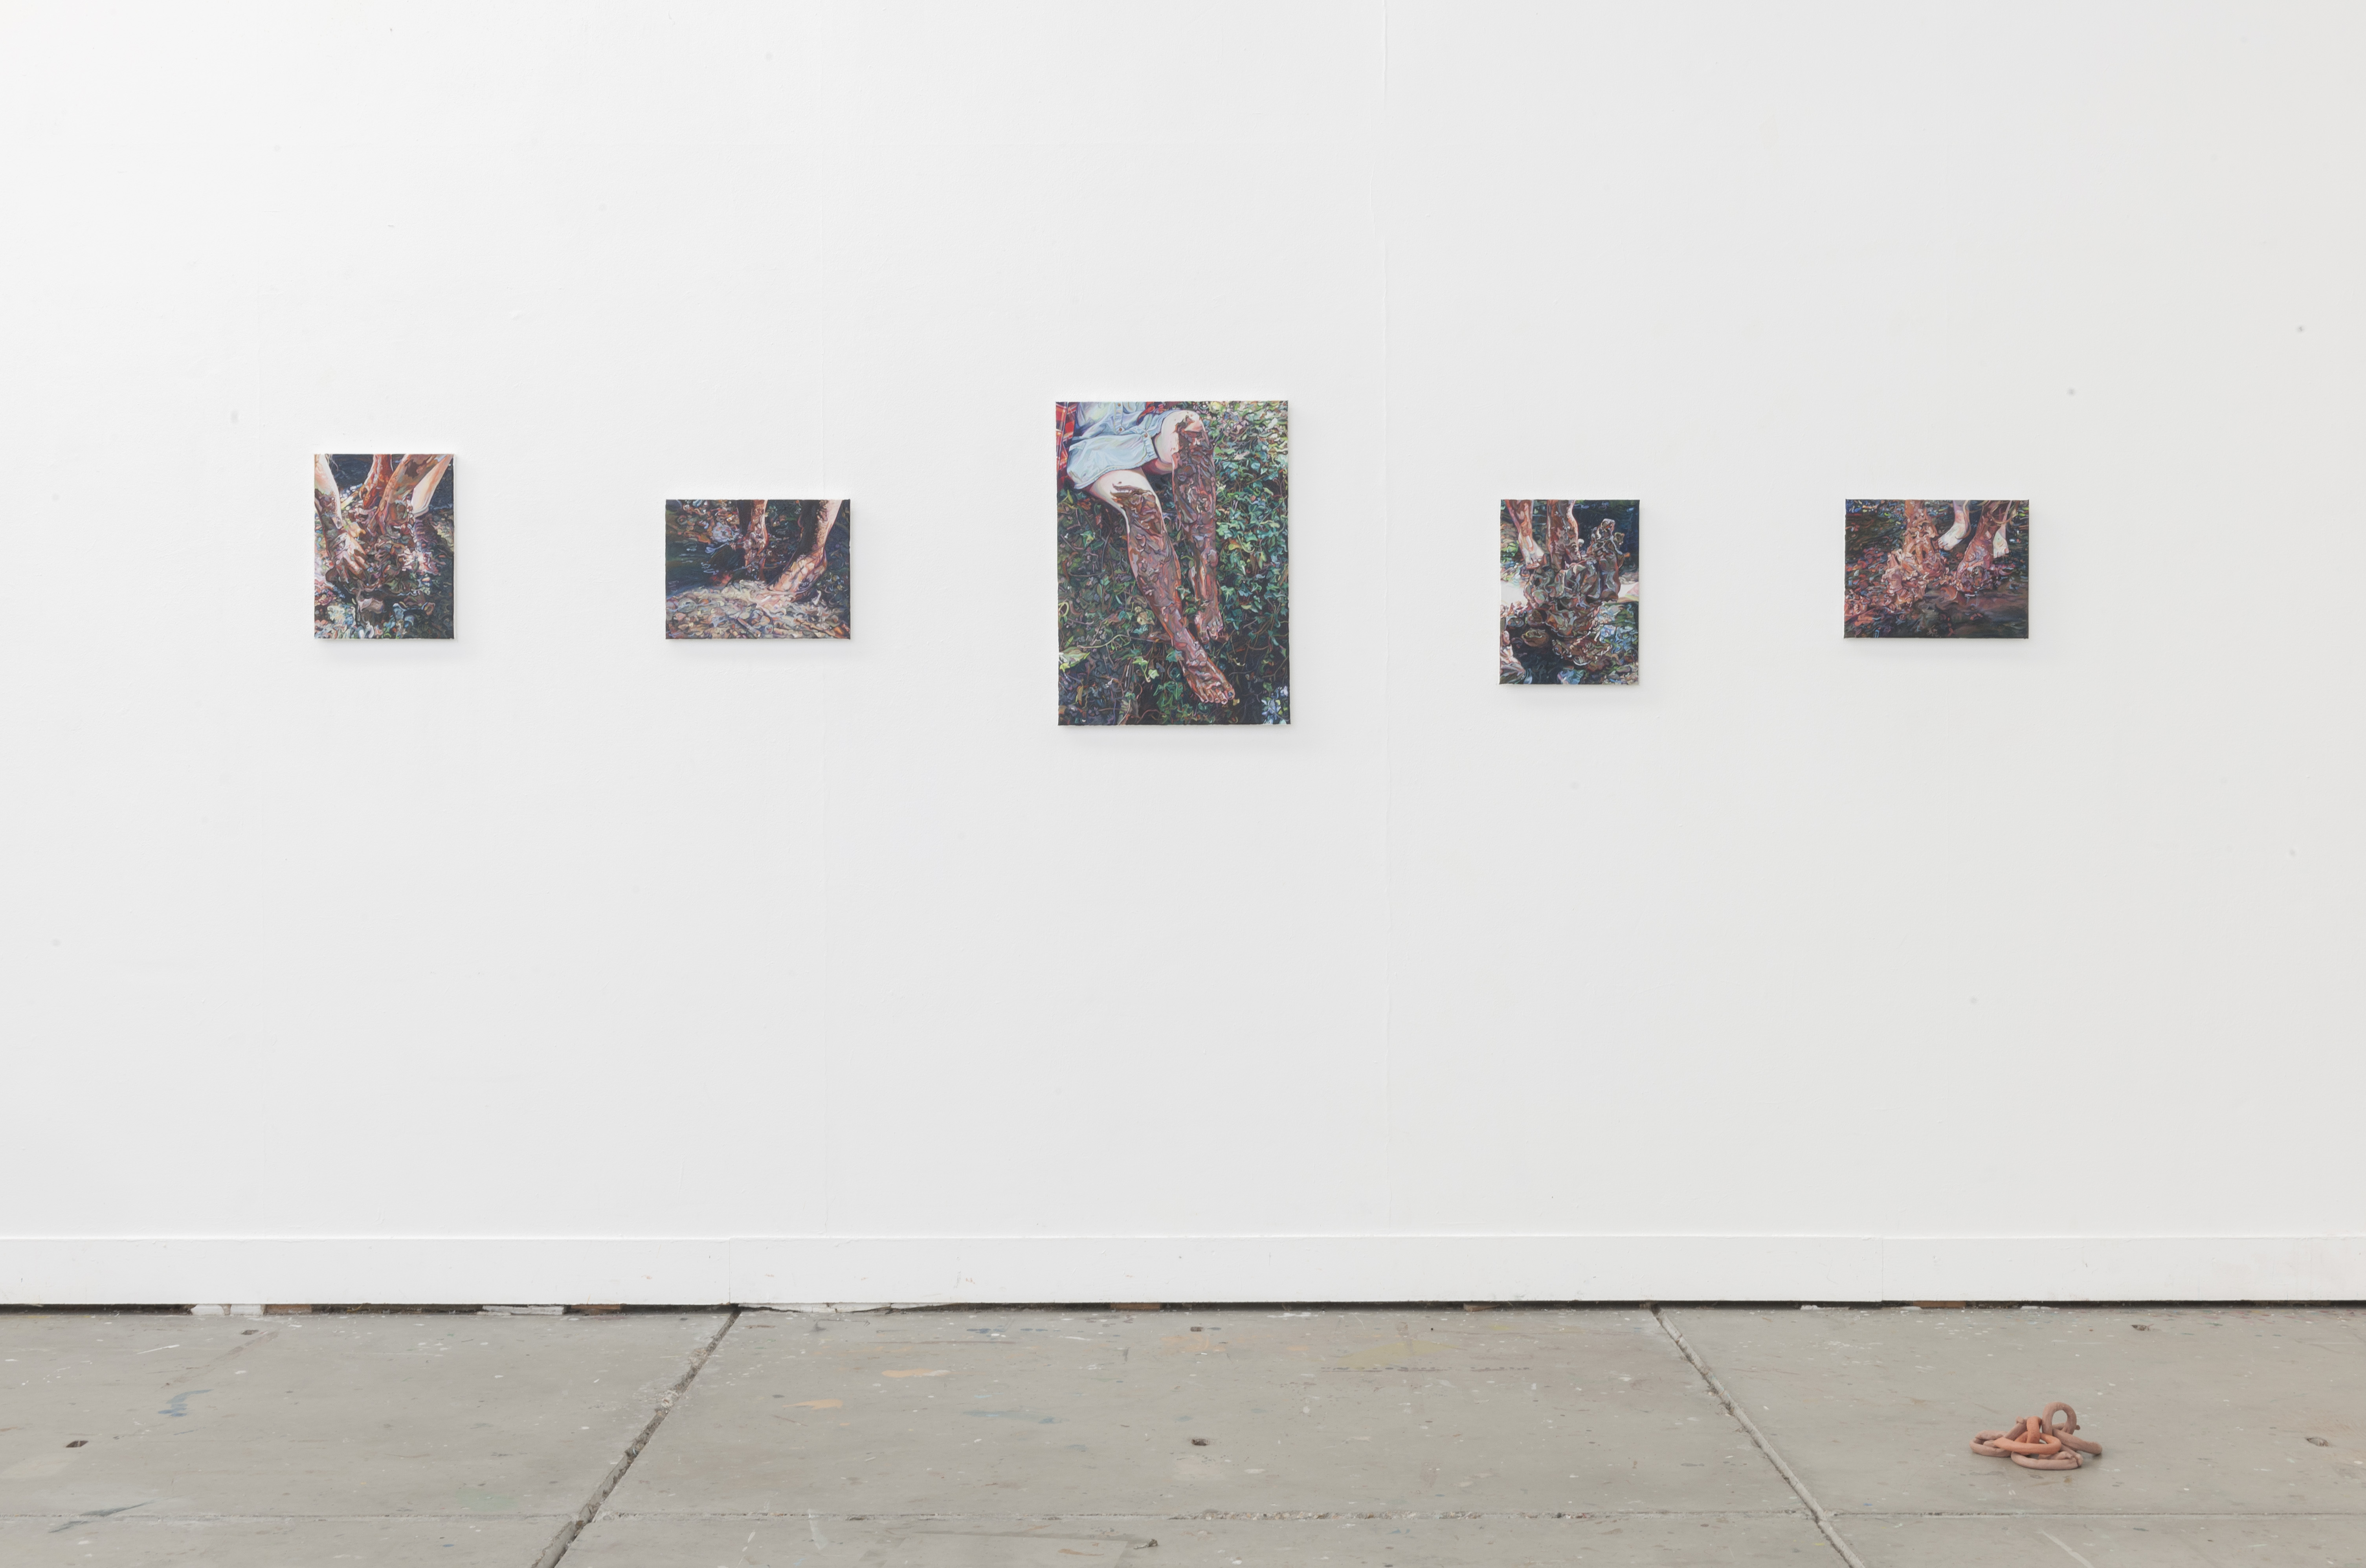 The Offering, installation view, Kaus Australis